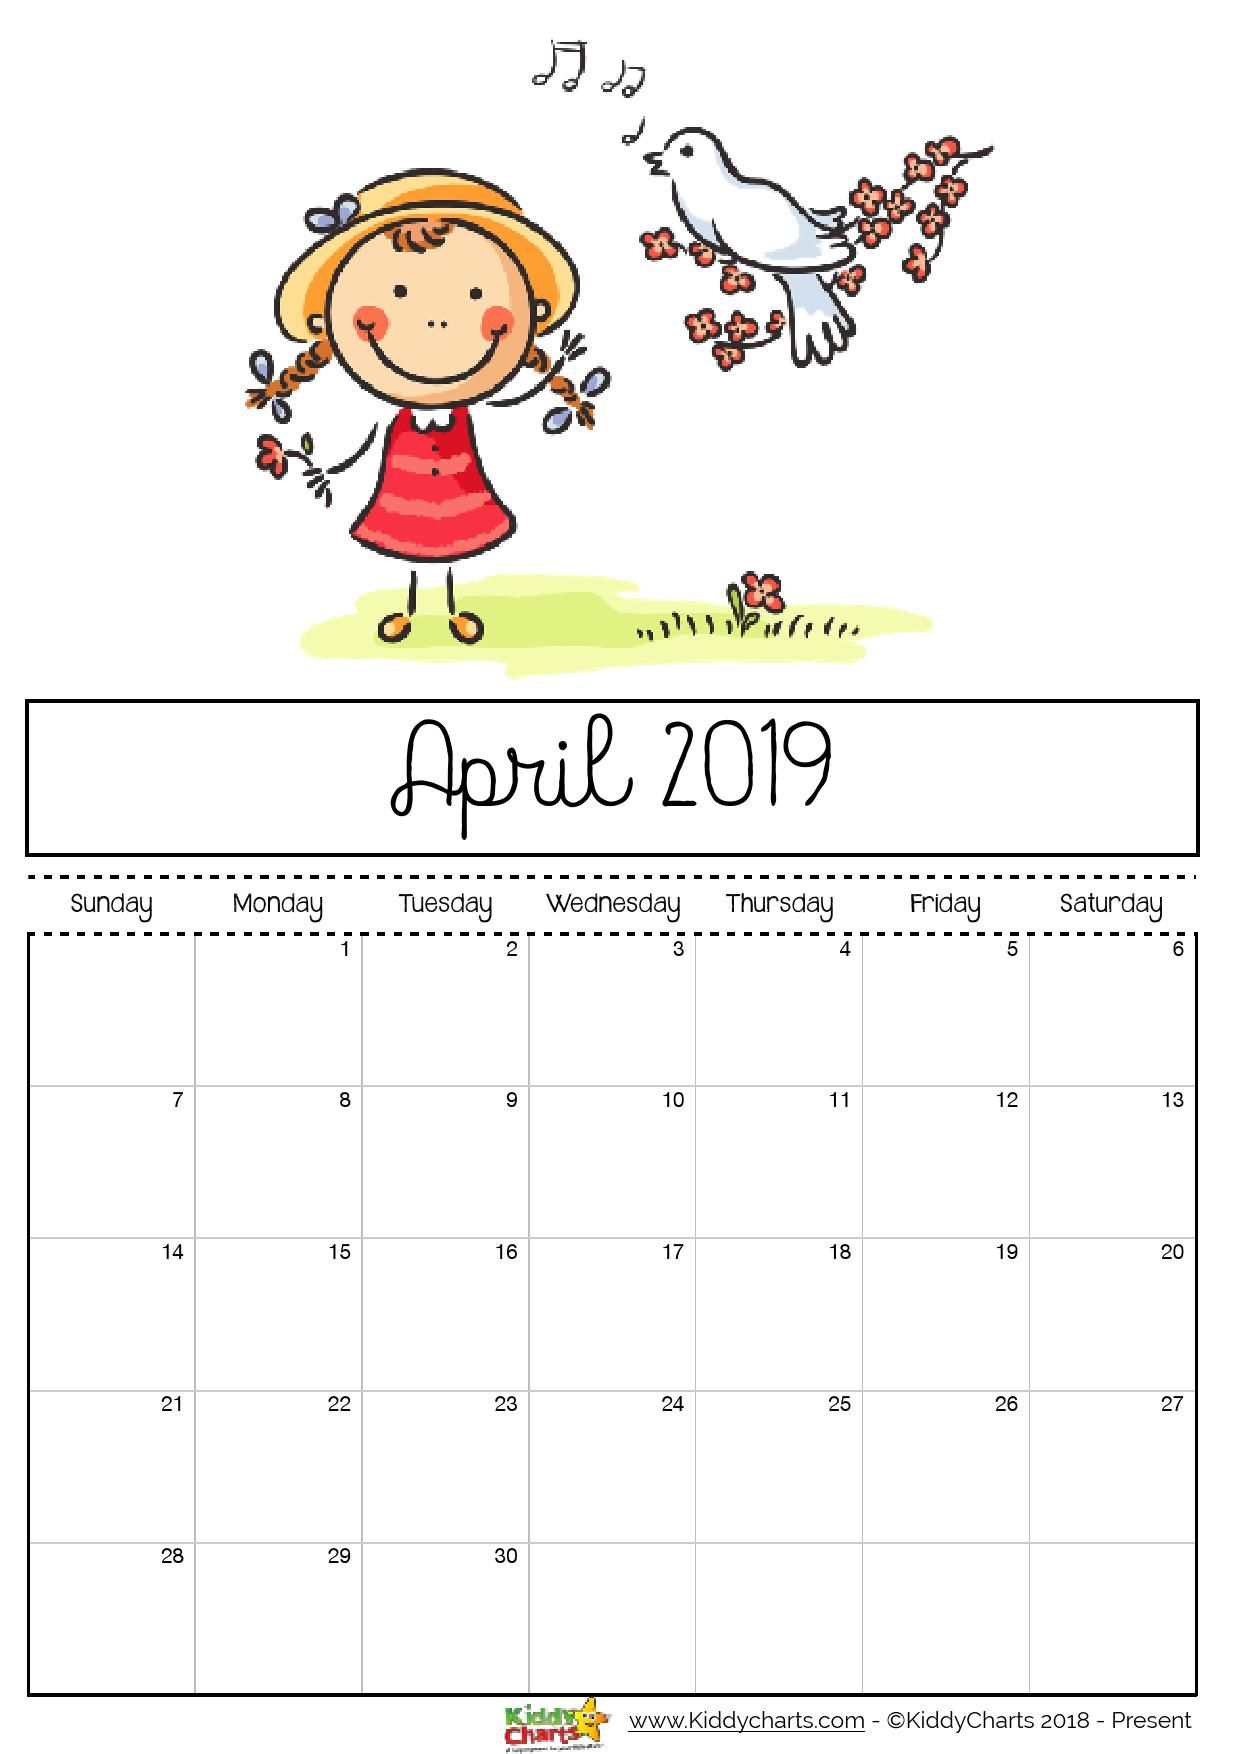 check out our fantastic free 2019 calendar for your child u0026 39 s bedroom